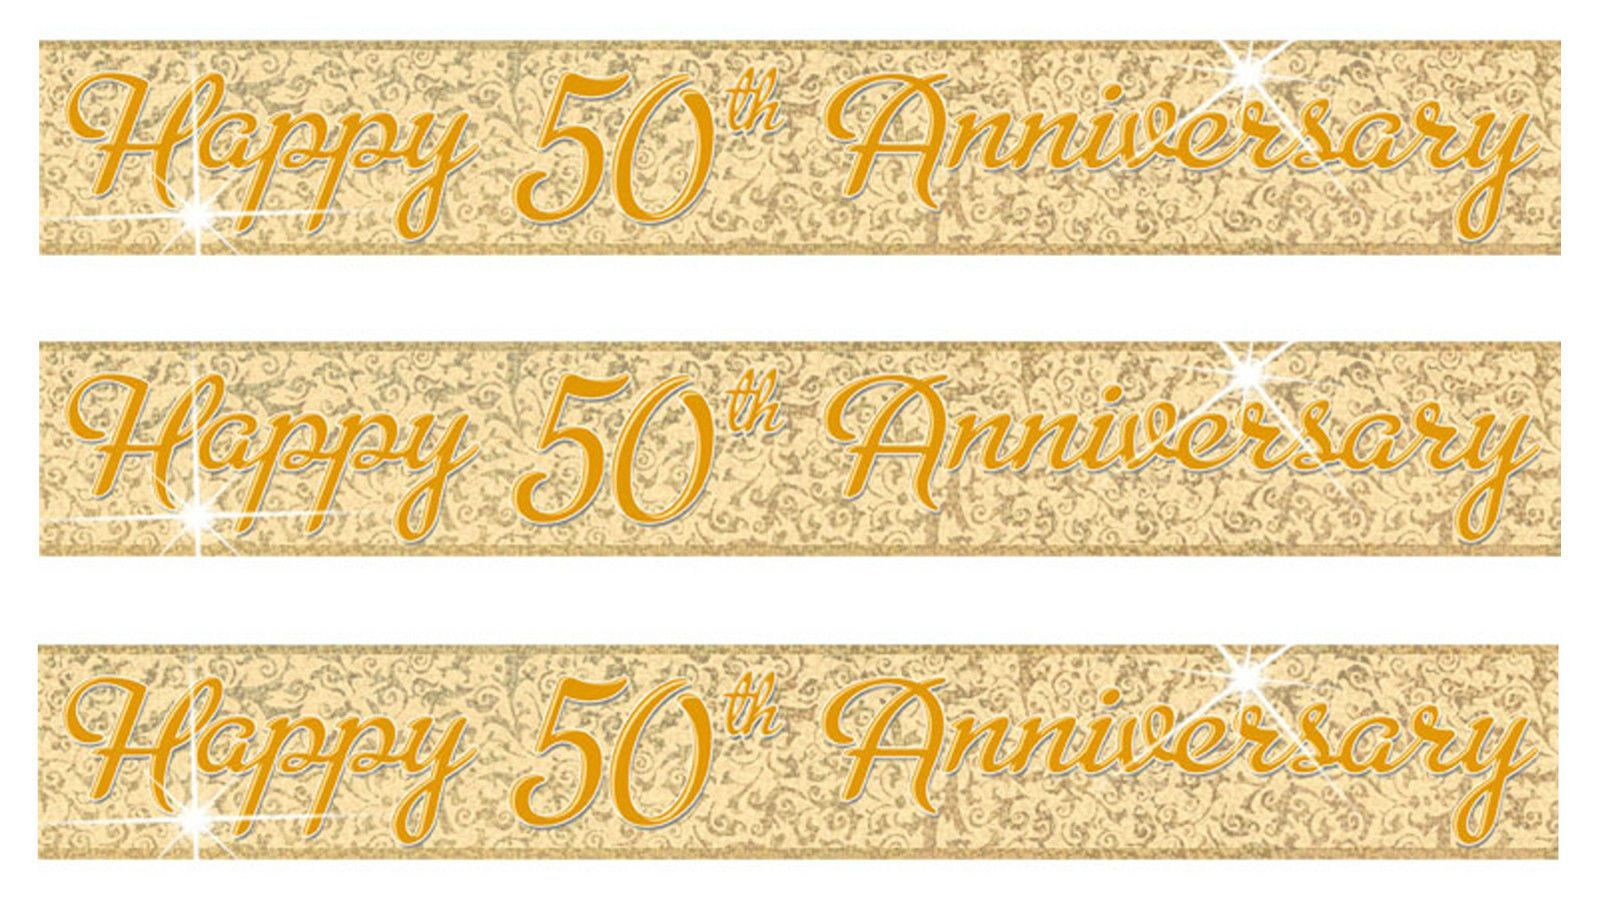 12 Feet Golden 50th Anniversary Wedding Party Foil Banner Decoration ...